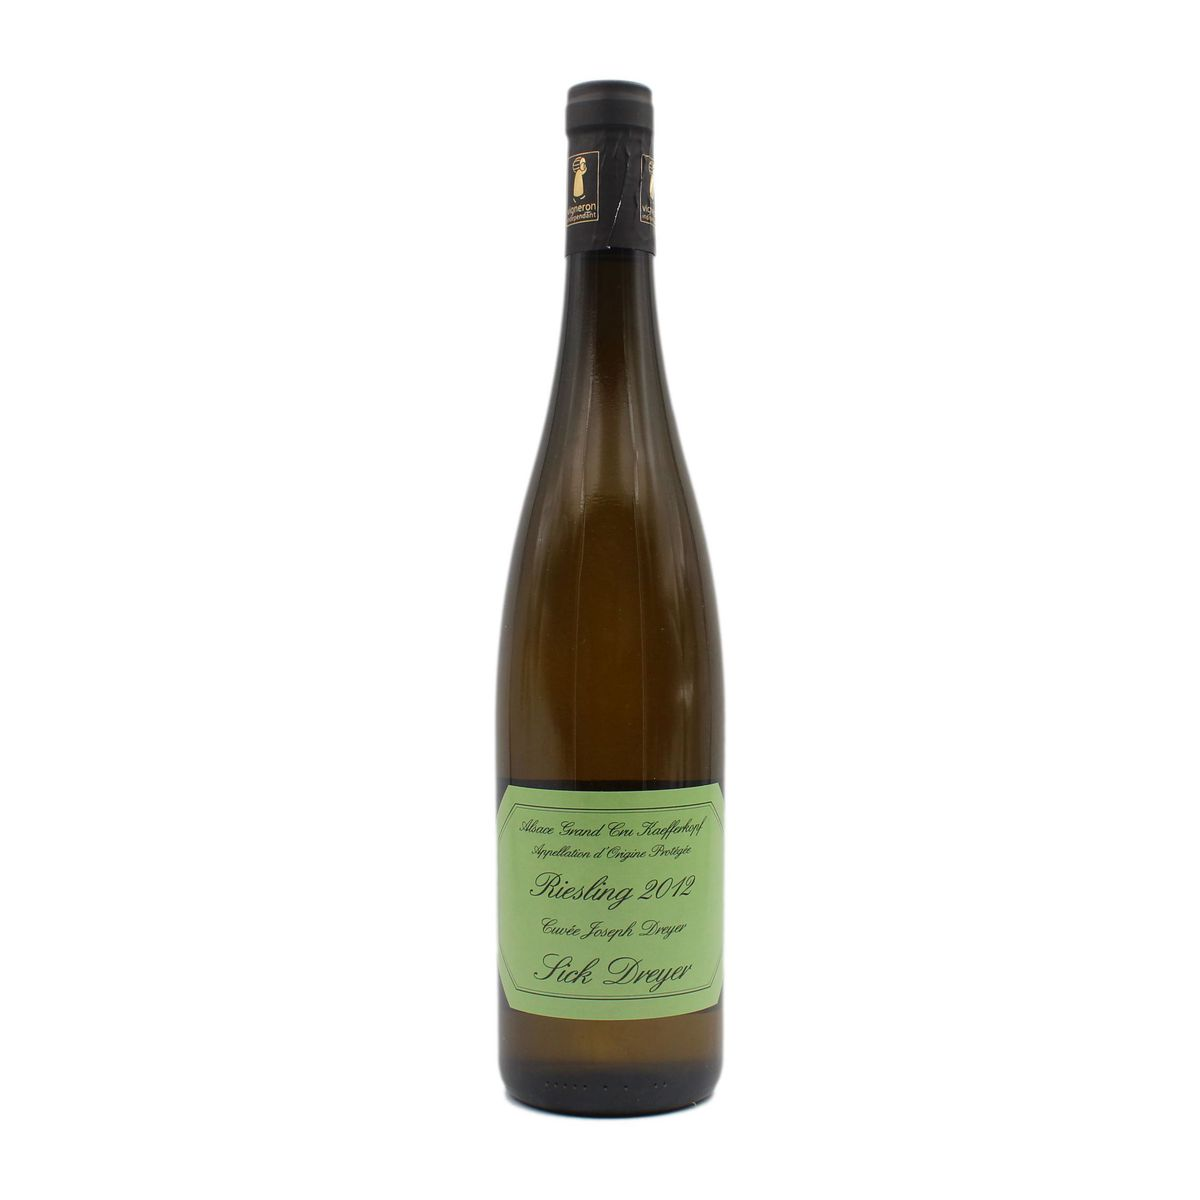 Riesling Kaefferkopf 2012 Sick - Dreyer